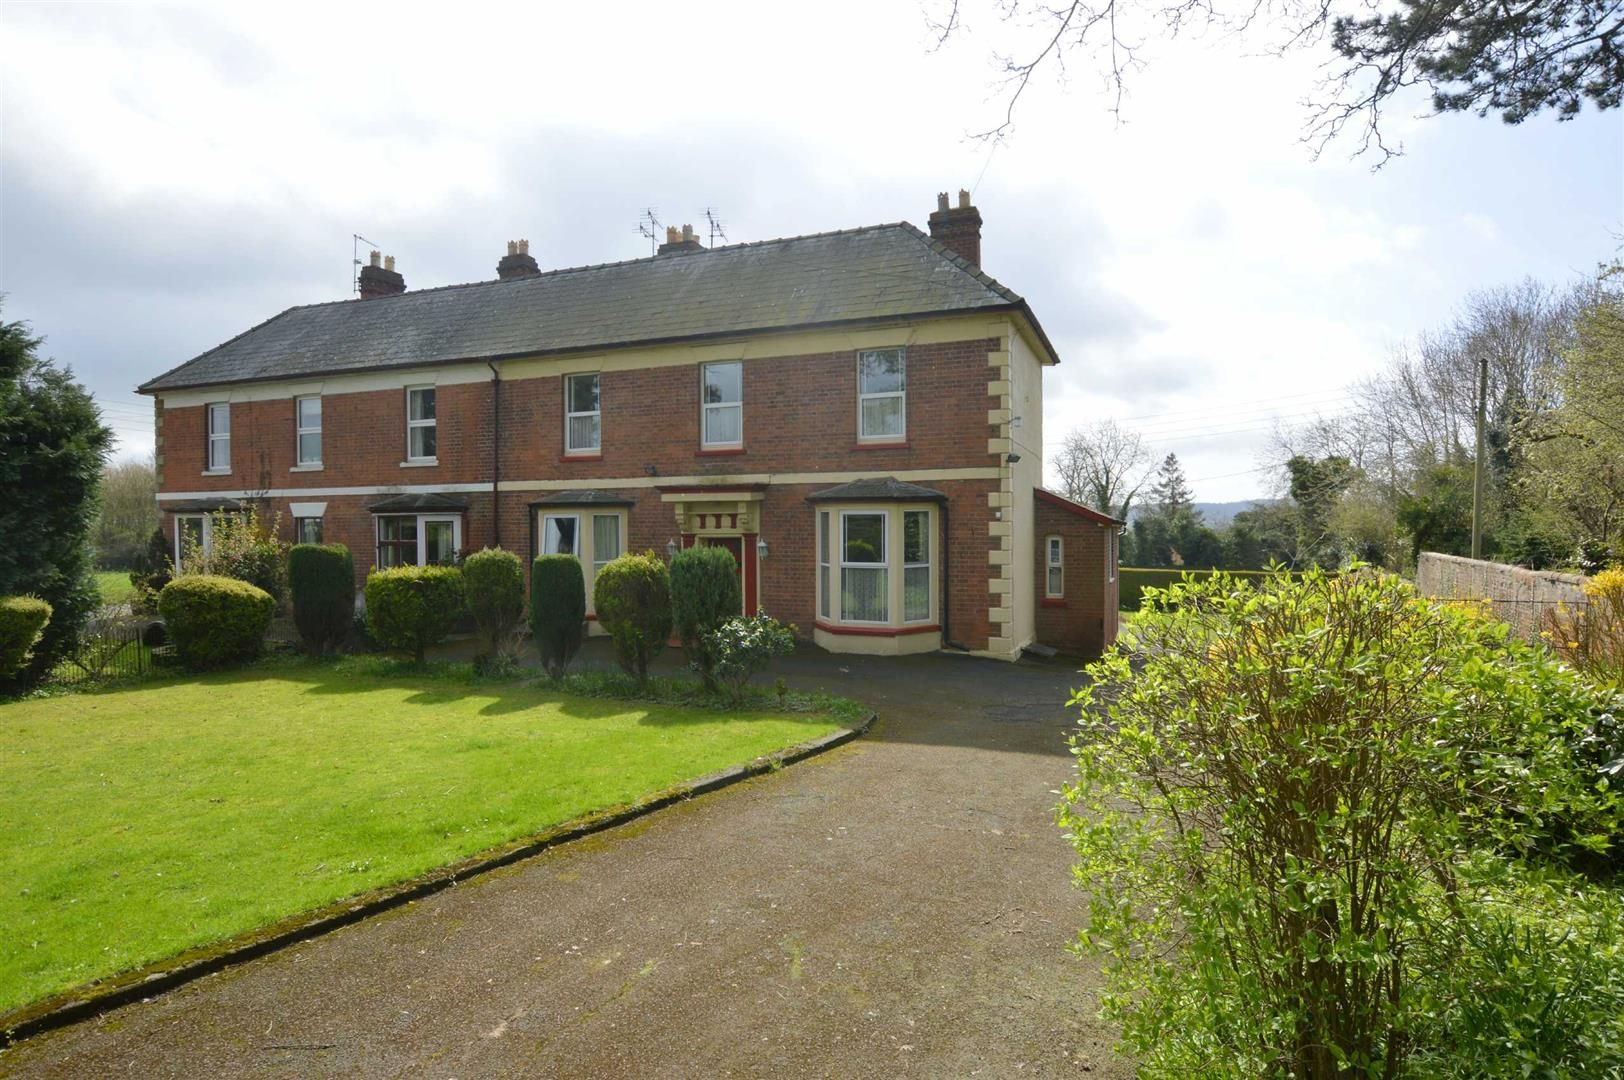 6 bed semi-detached for sale in Leominster, HR6